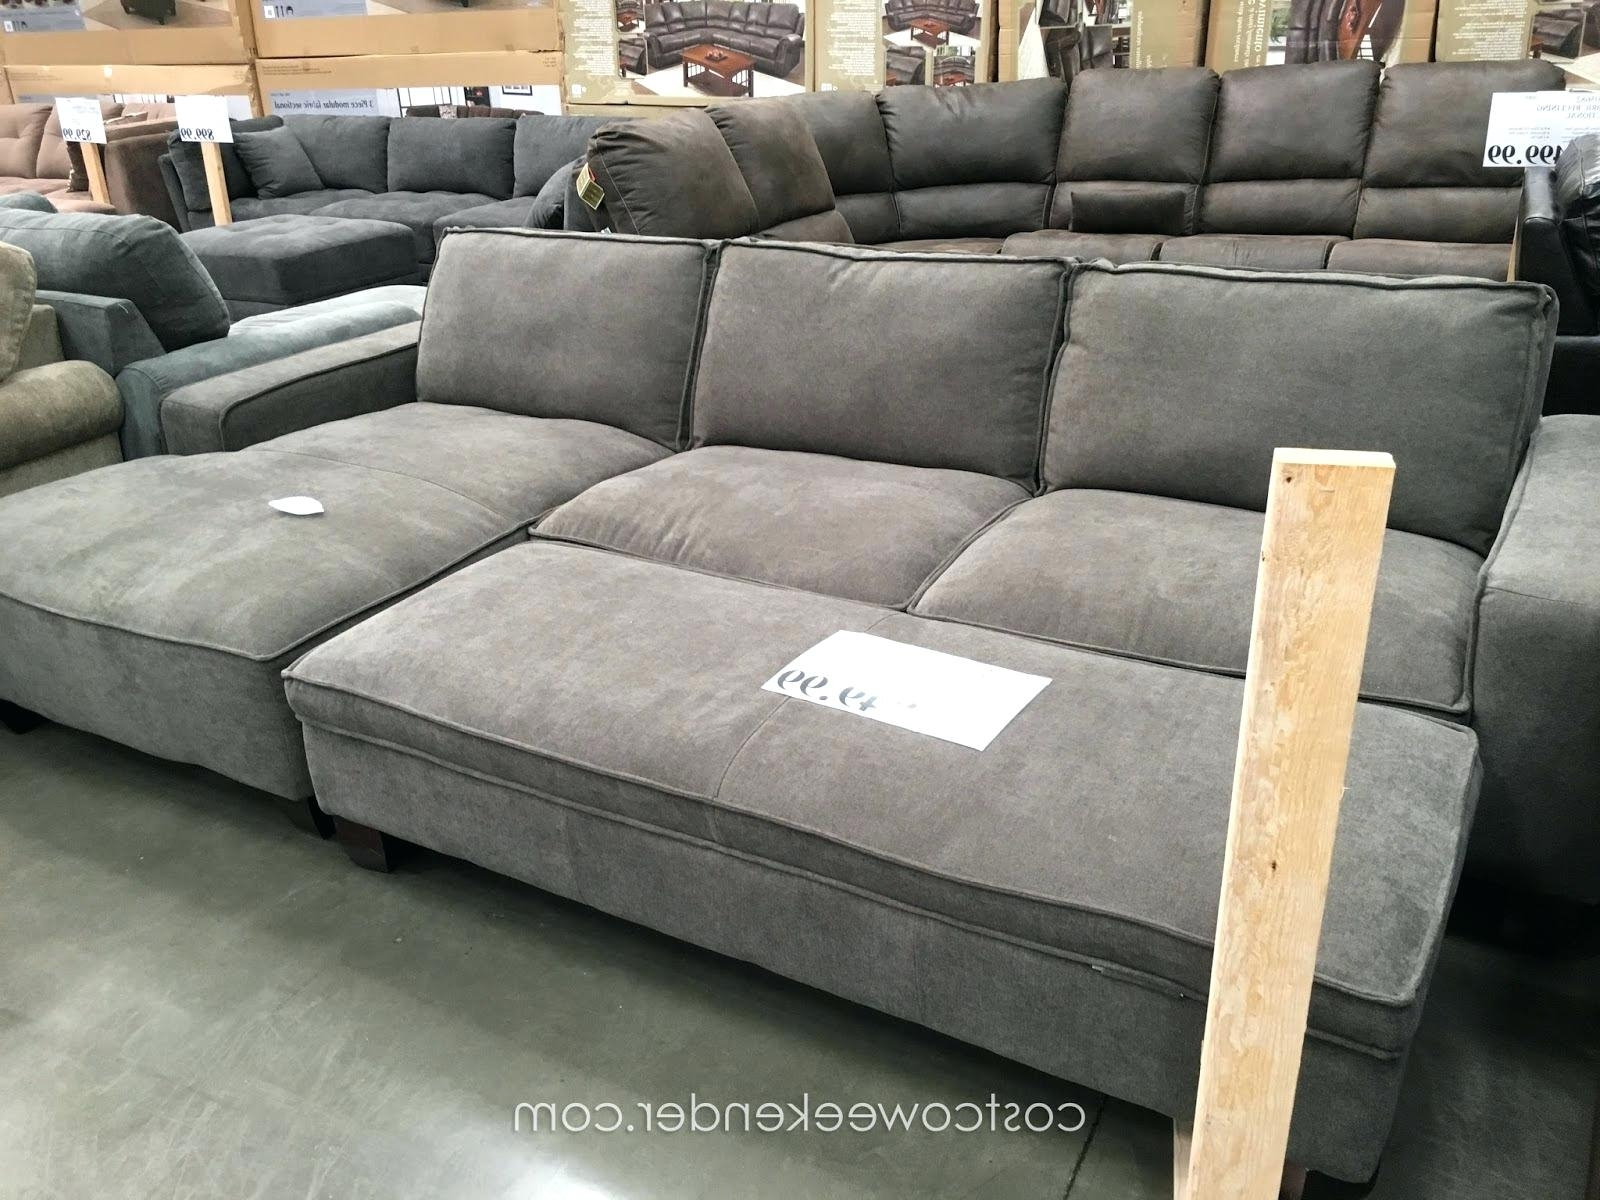 Latest Articles With Gray Sectional Sofa Chaise Lounge Tag 3Pc Pertaining To Sectional Sofas With Chaise And Ottoman (View 2 of 15)